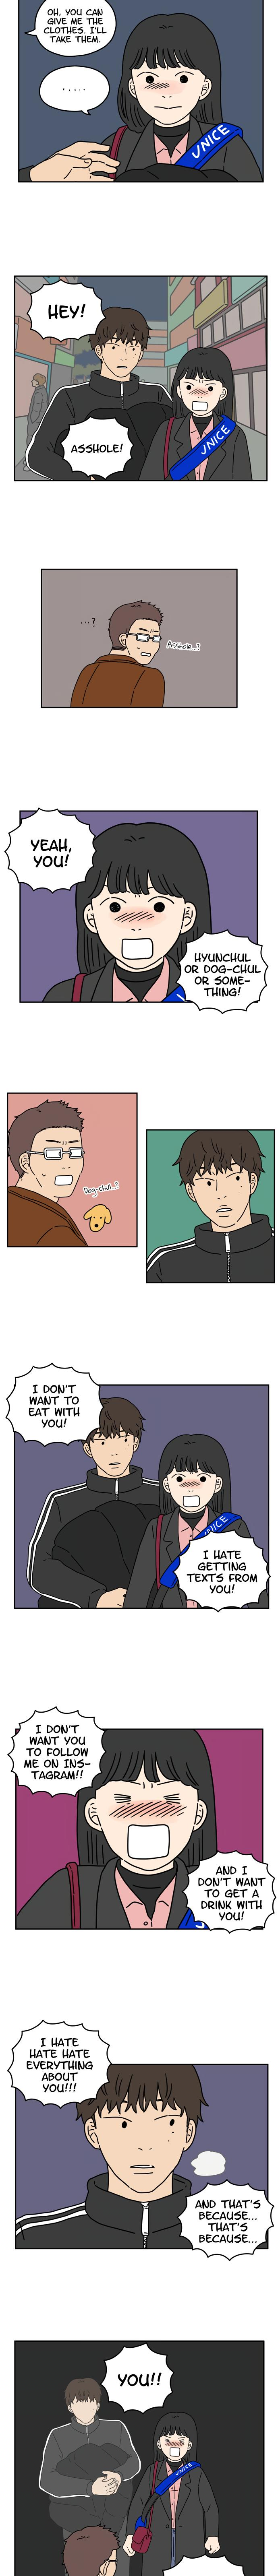 The Year We Turned 29 Chapter 32: I Fall In Love Too Easily (2/2) page 2 - Mangakakalots.com